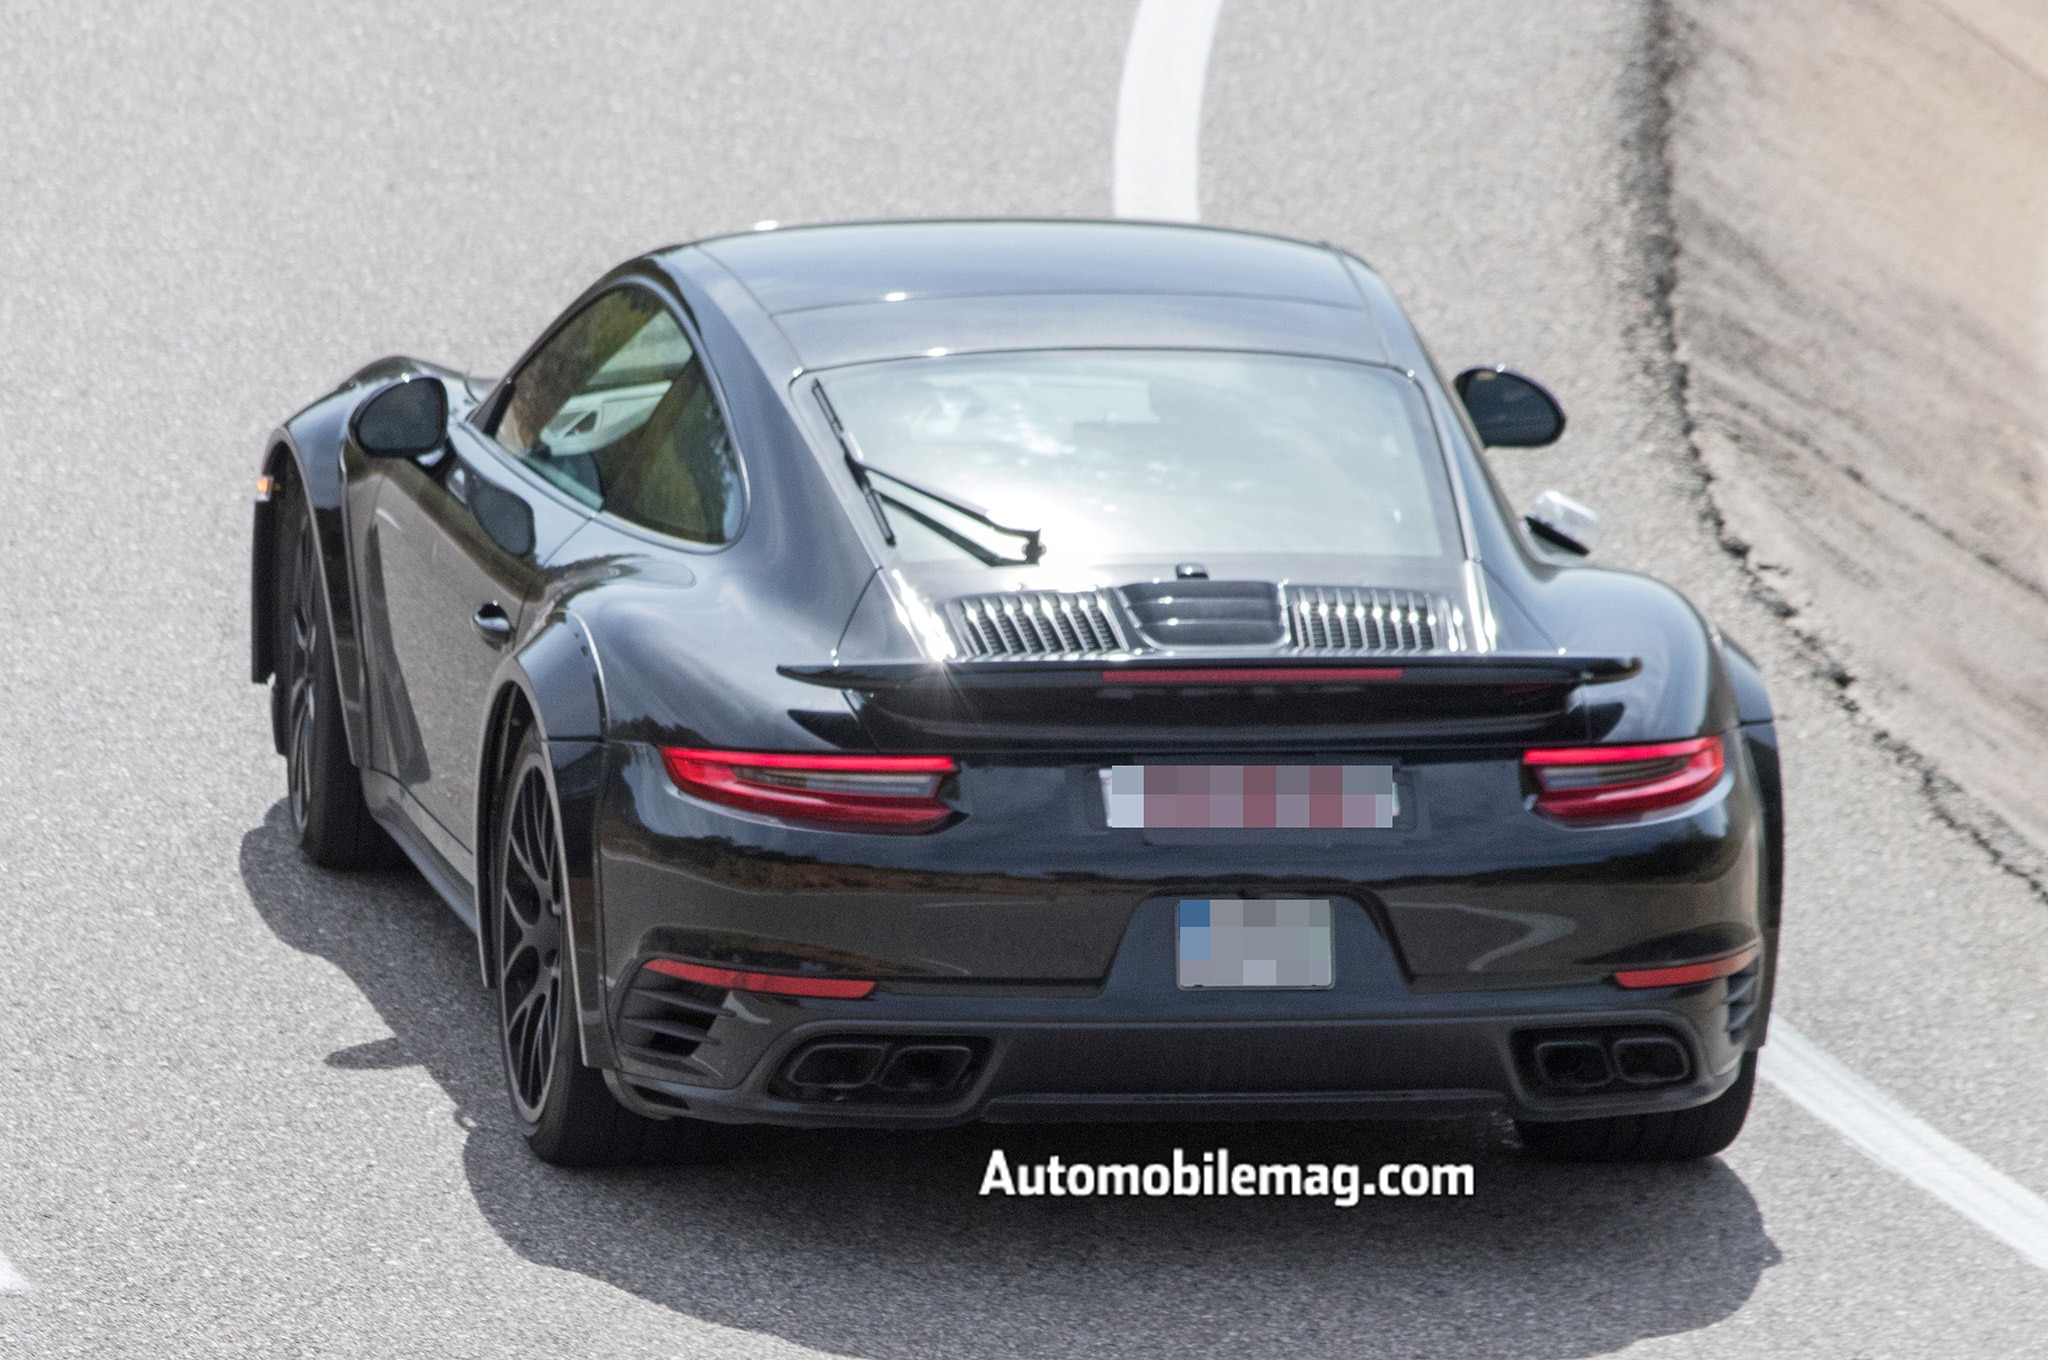 Next Generation Porsche 911 Turbo Spied Automobile Magazine